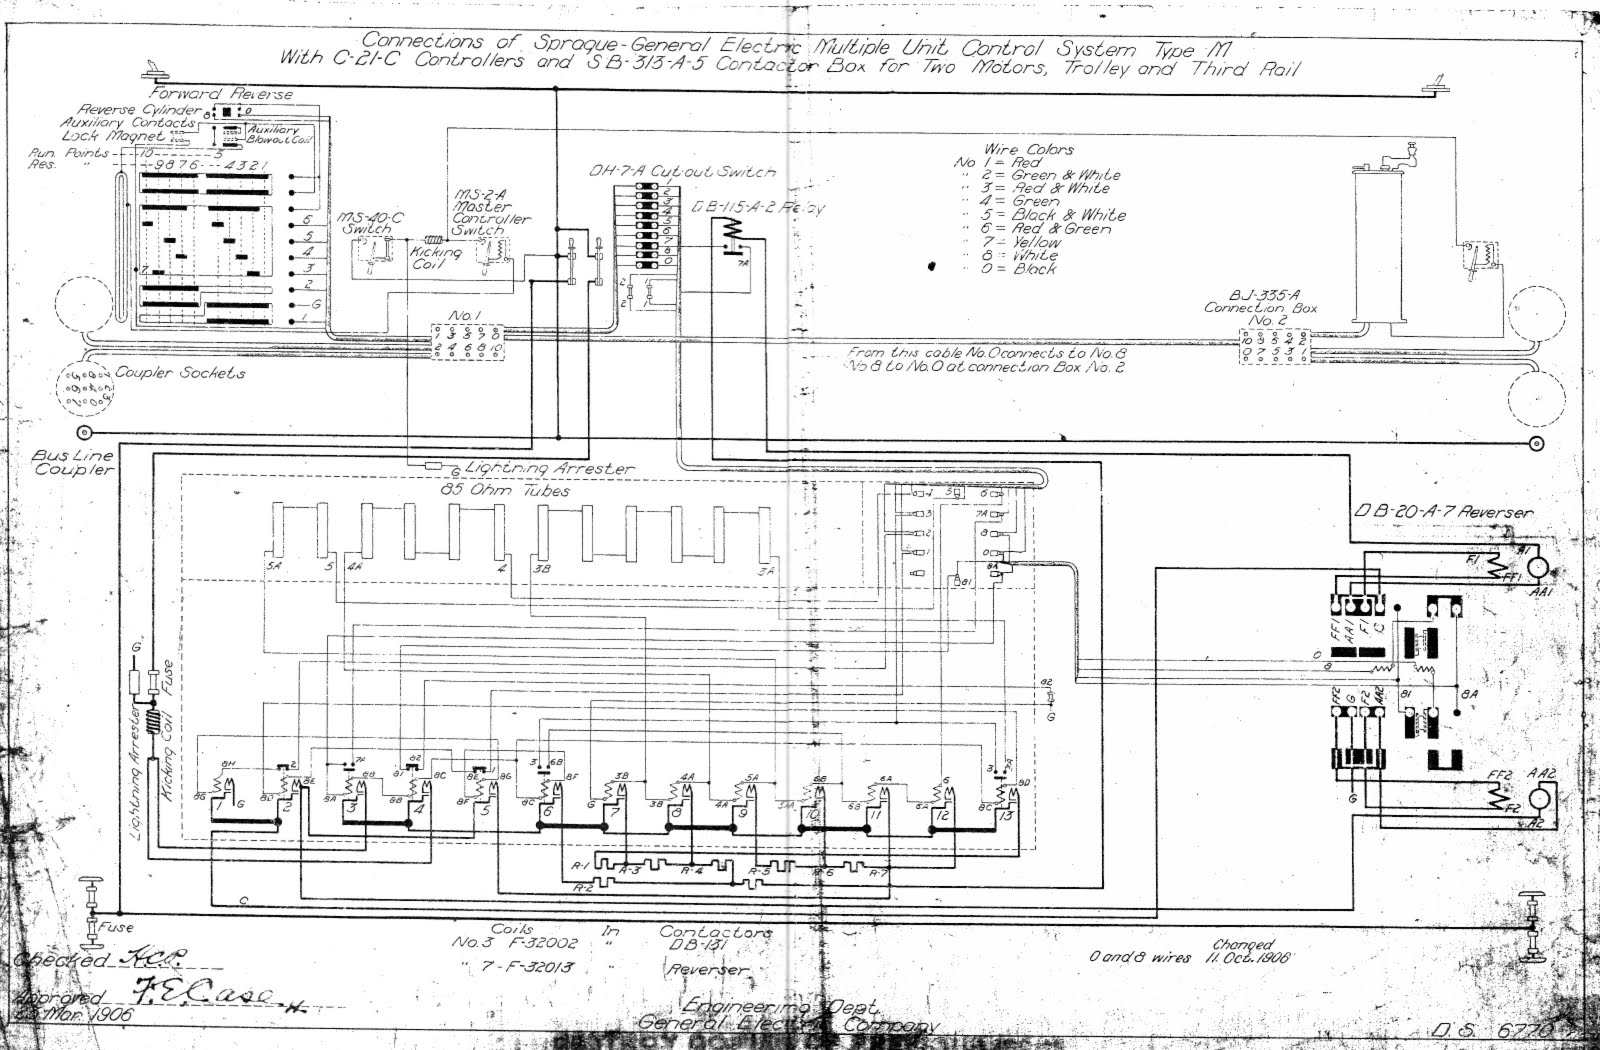 Control Circuit Diagrams on chevy truck manual